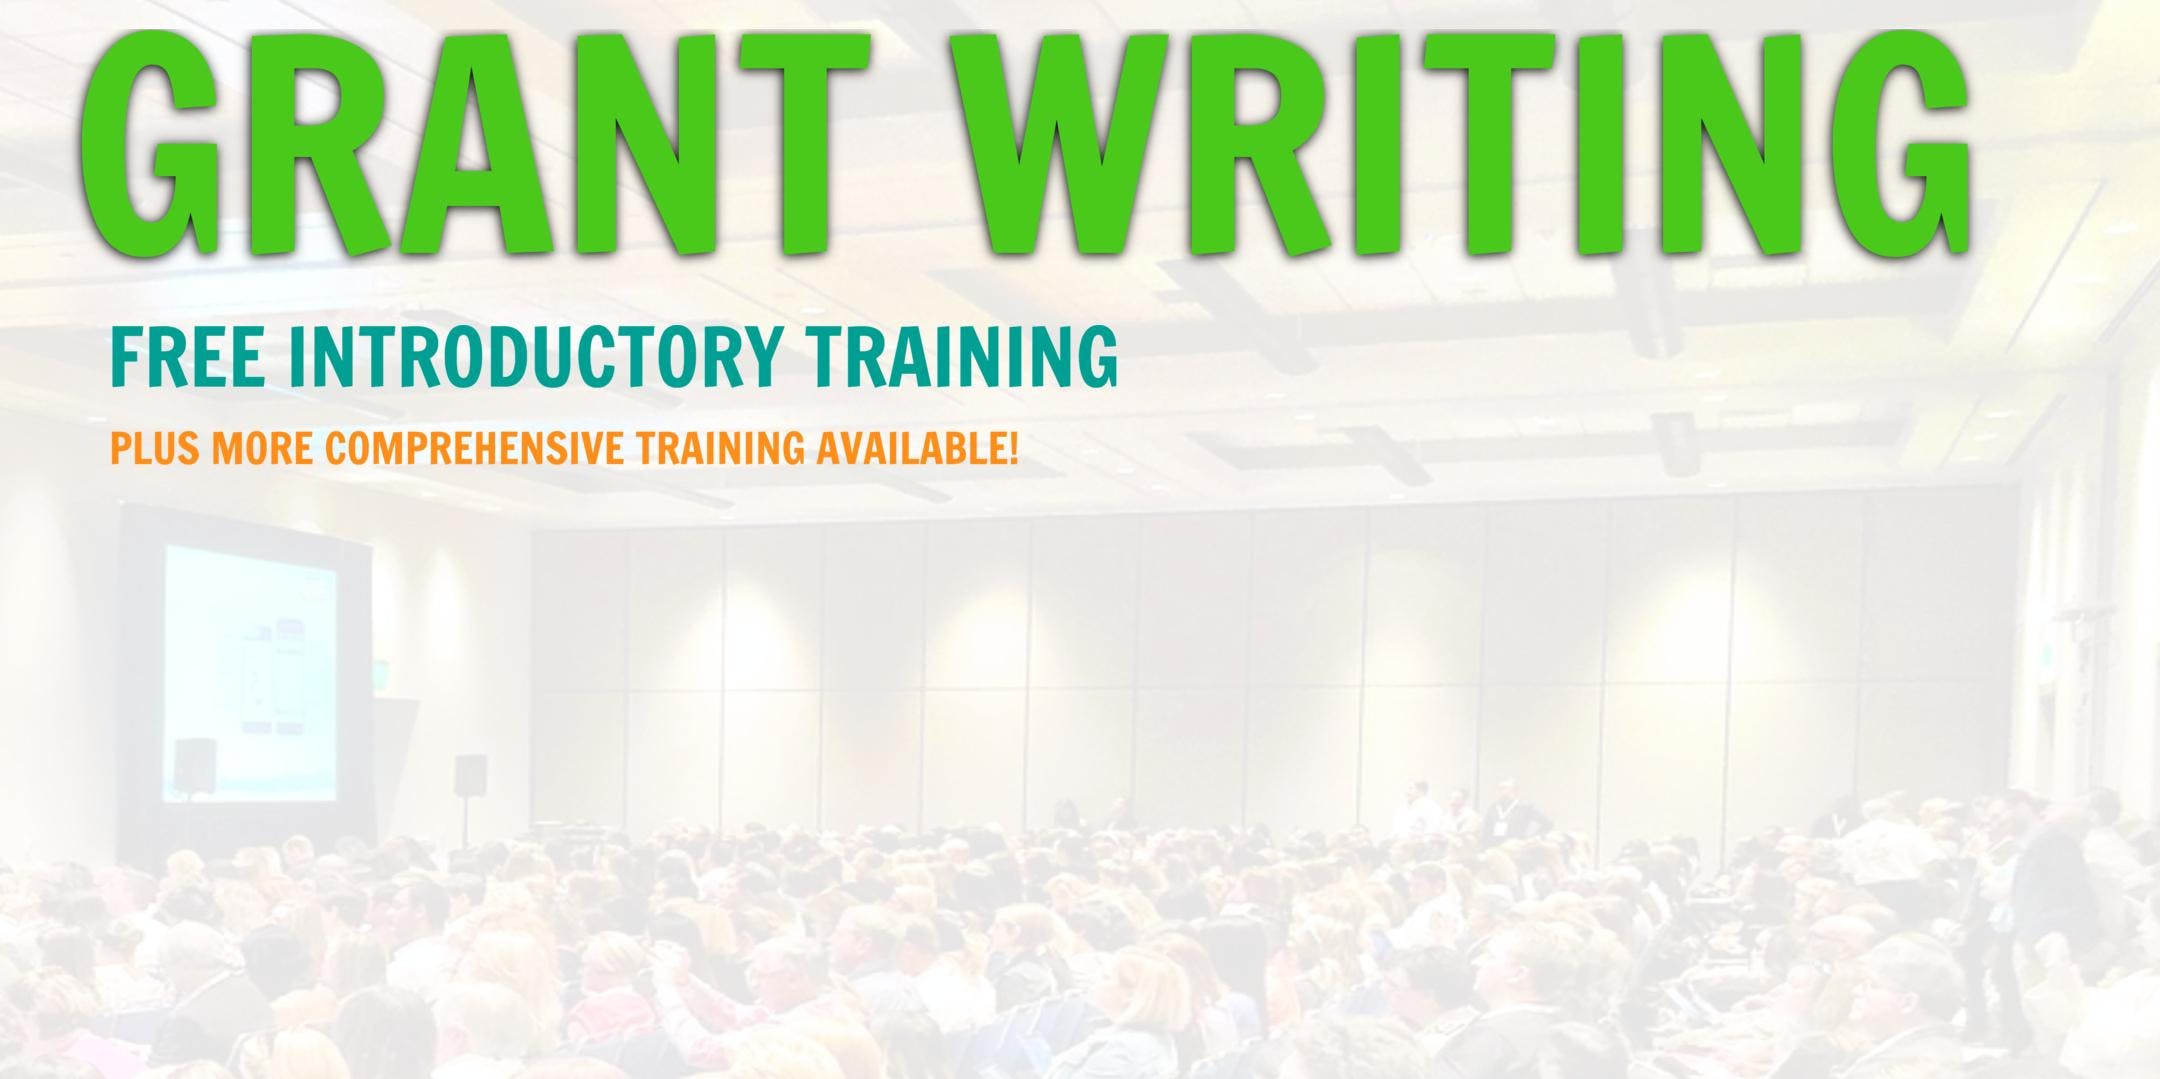 Grant Writing Introductory Training... Charle